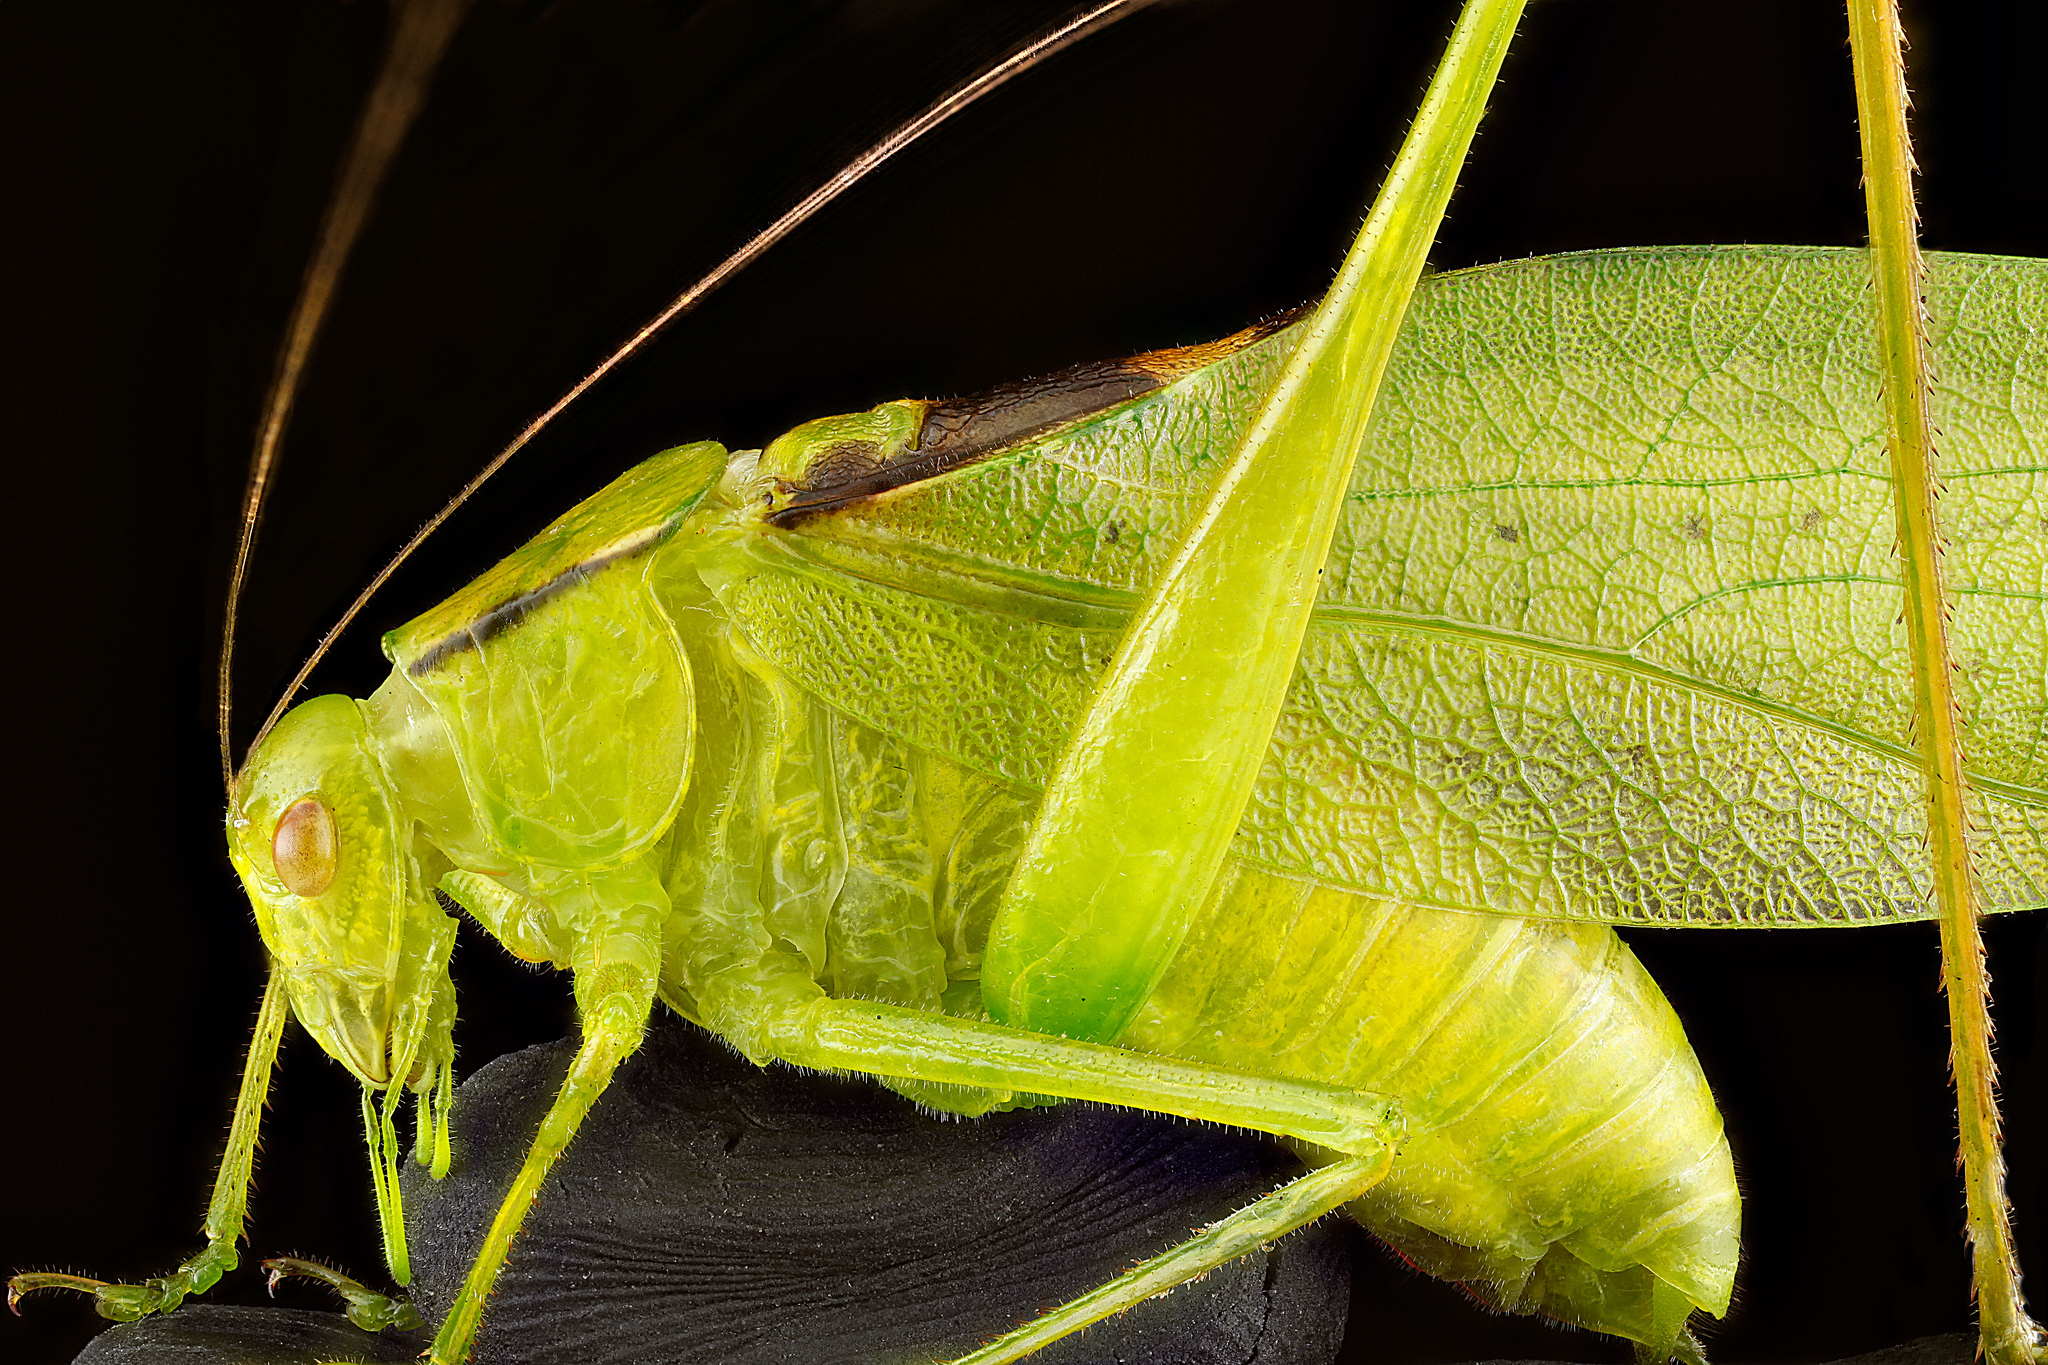 Oblong-winged katydid, Upper Marlboro, Md., July 2012